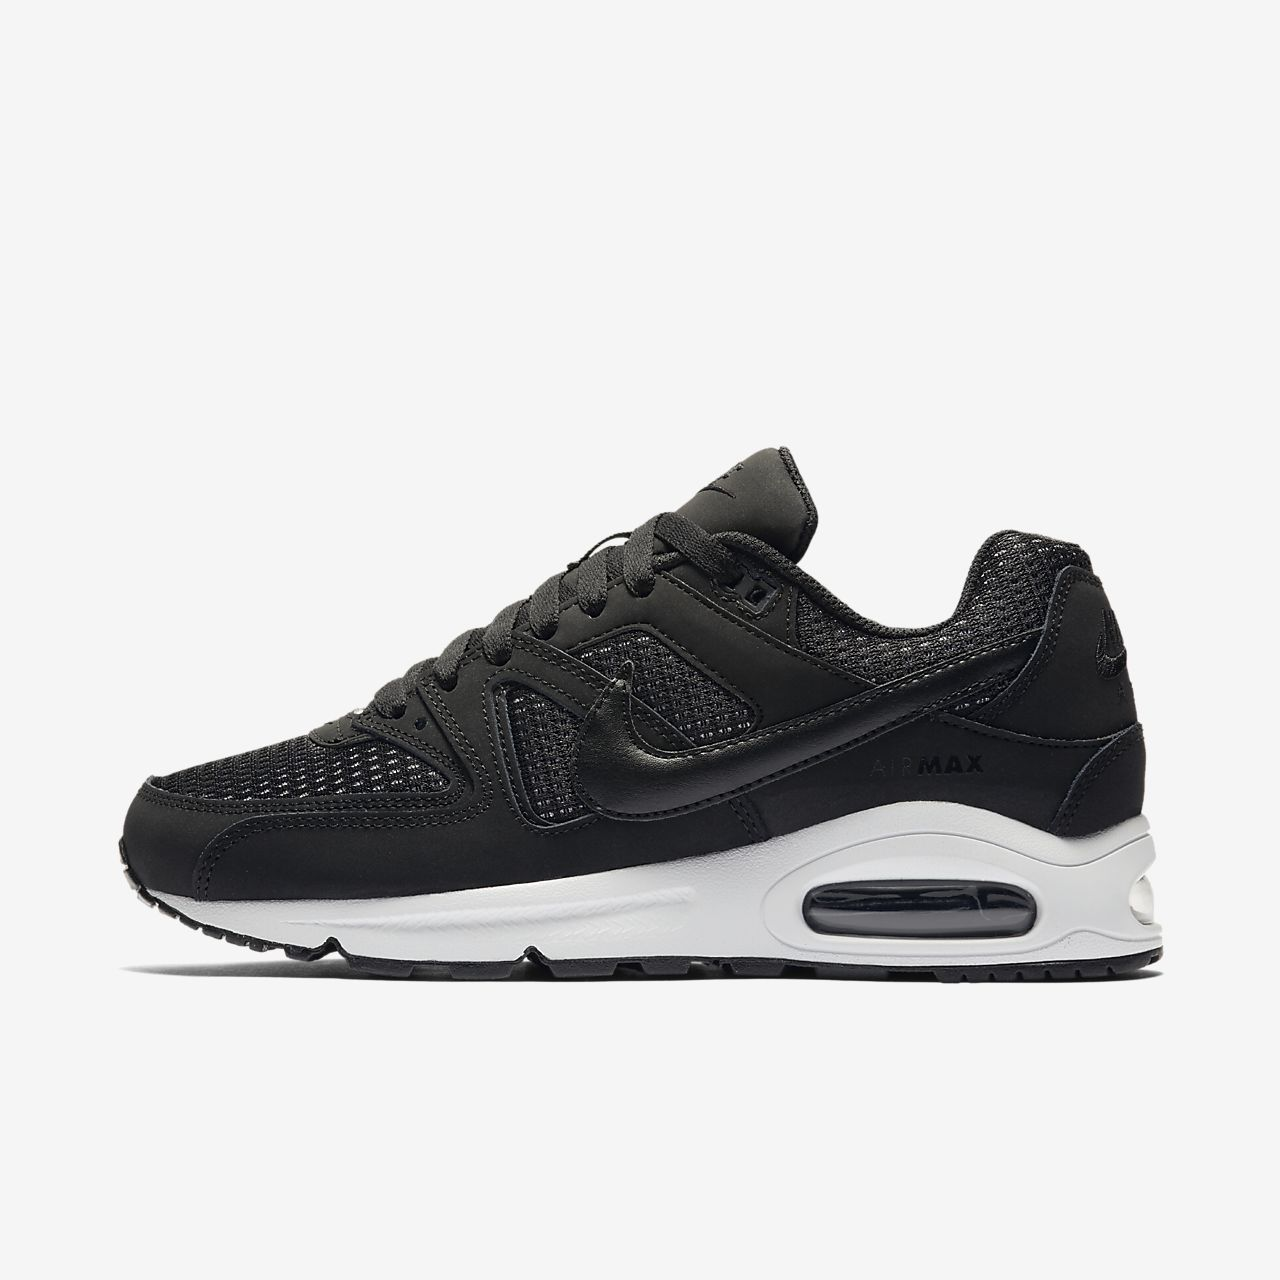 e966af4ce4a1f Nike Air Max Command Zapatillas - Mujer. Nike.com ES